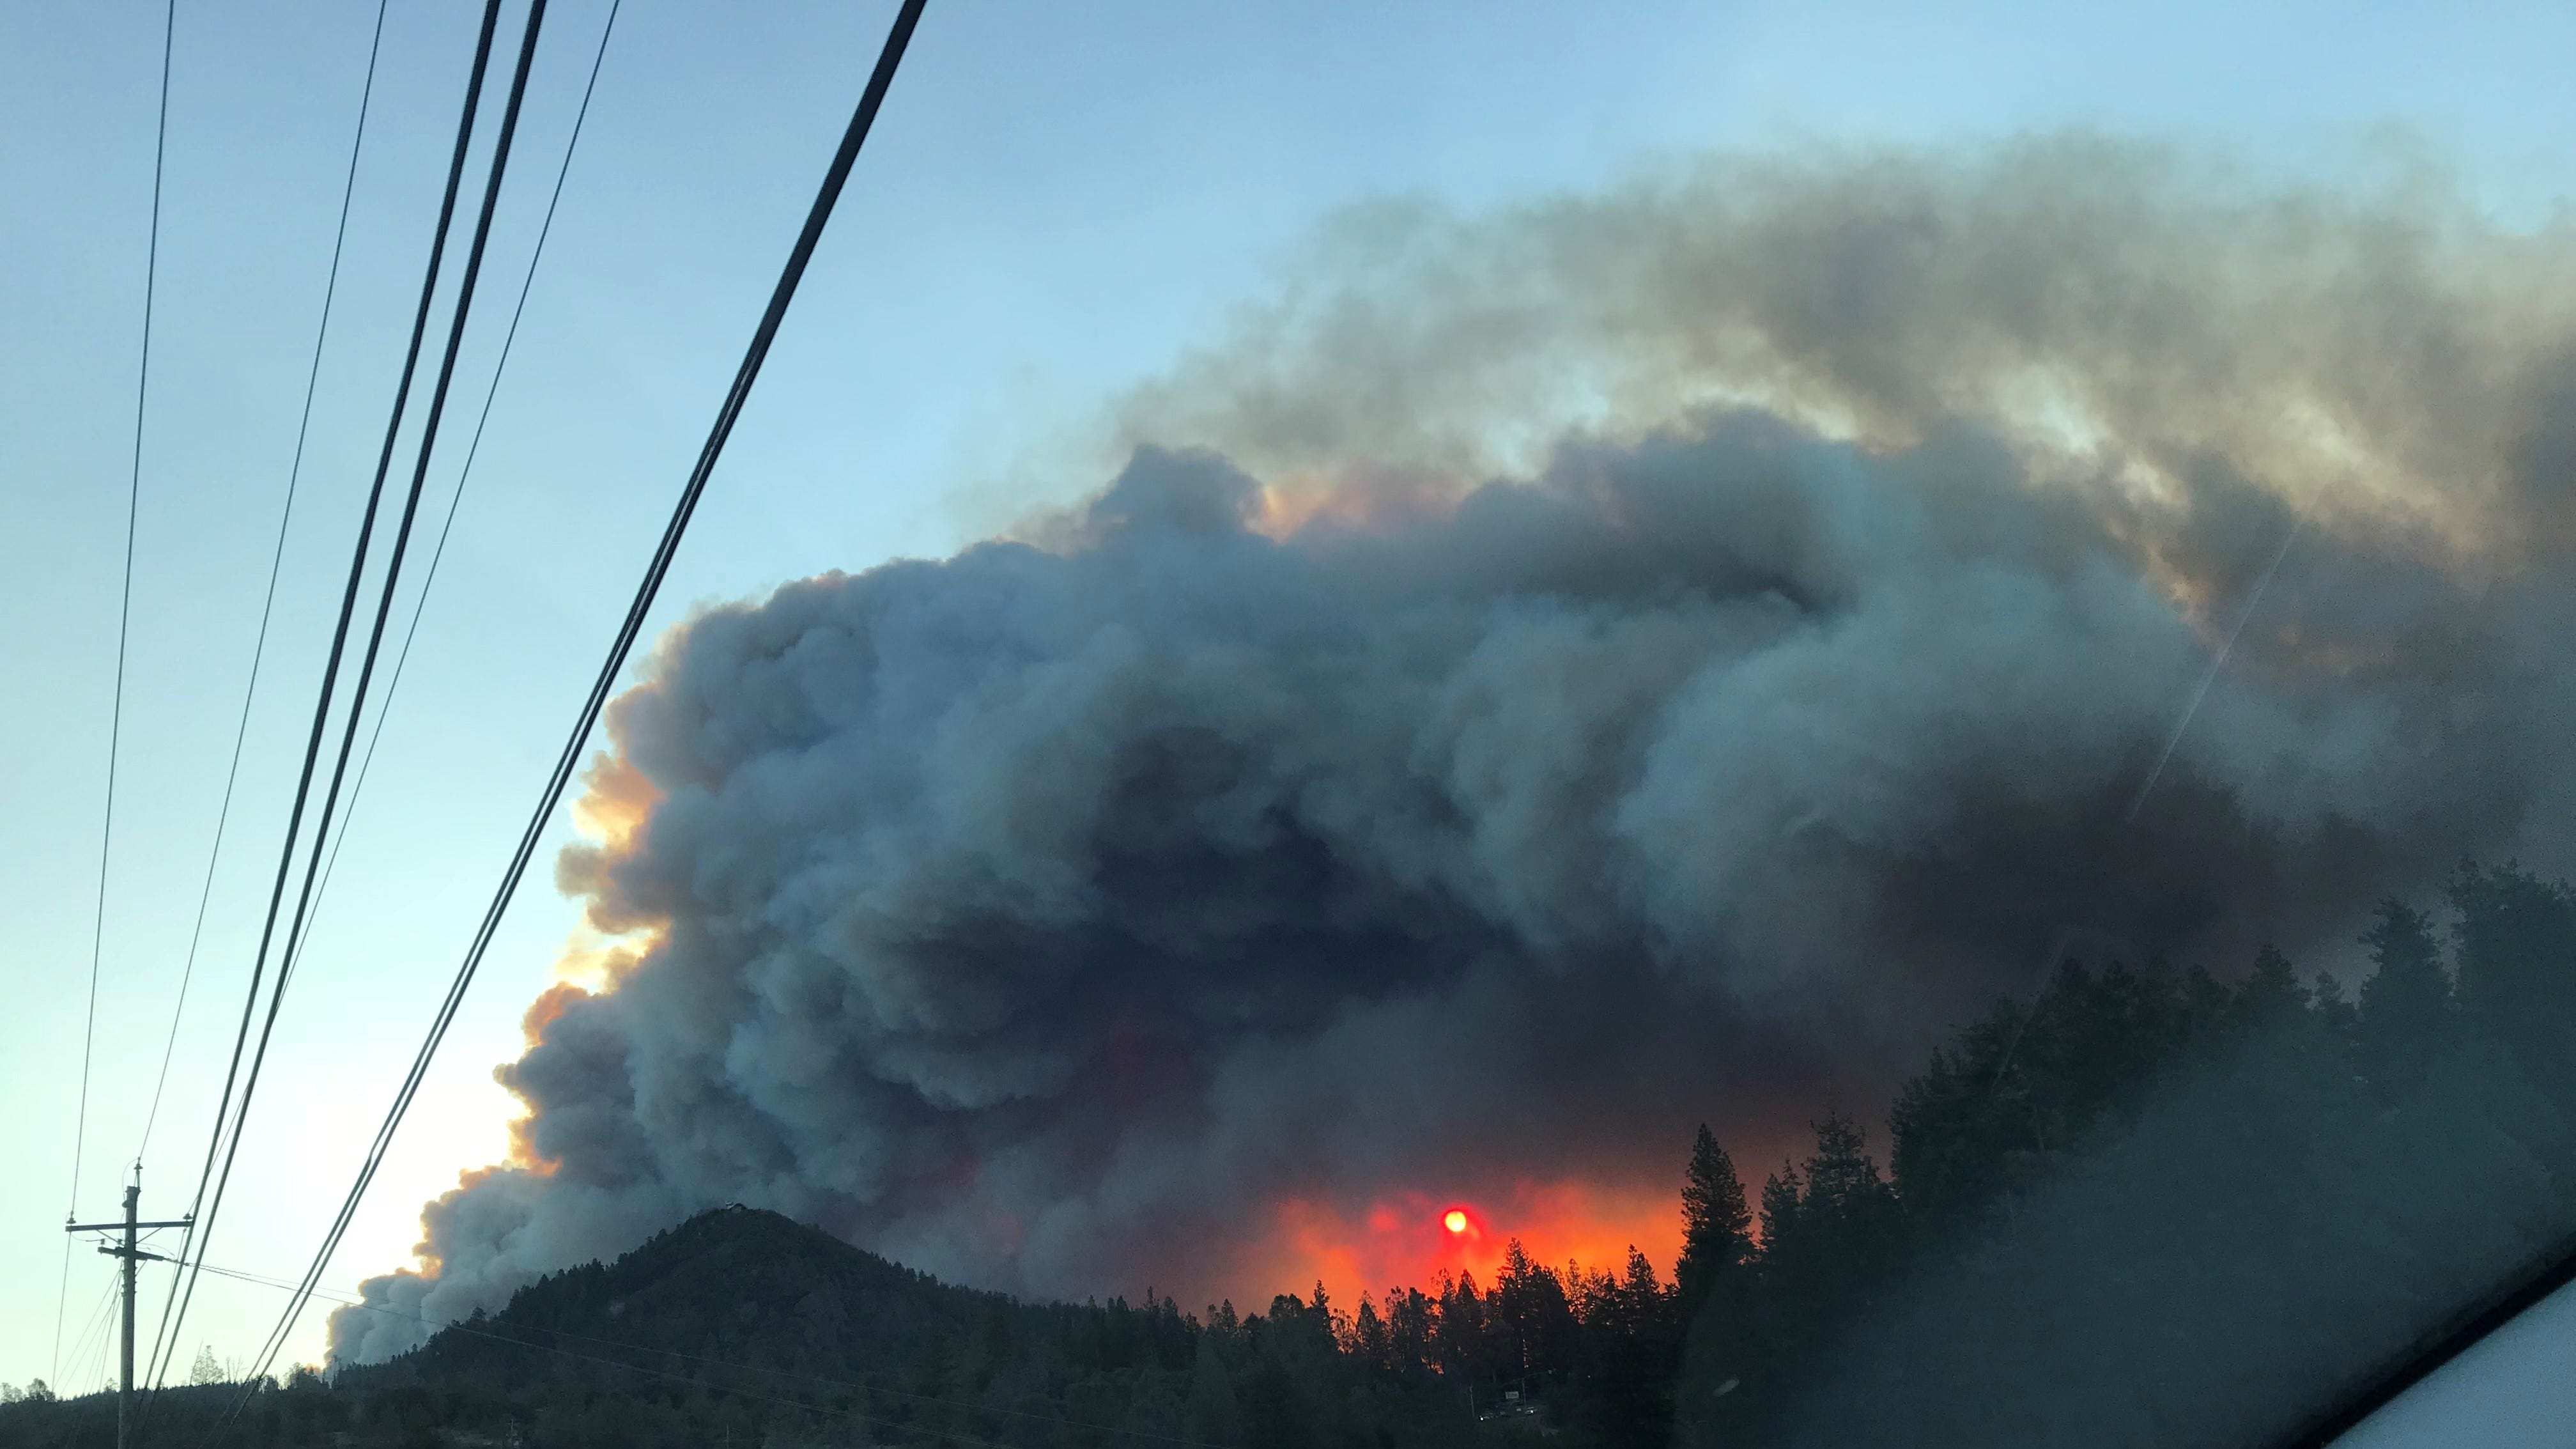 A view of the Camp Fire consuming Paradise from Patty Nonneman's daughter, Nicole, as the family waited for Chris Nonneman to reach Chico.